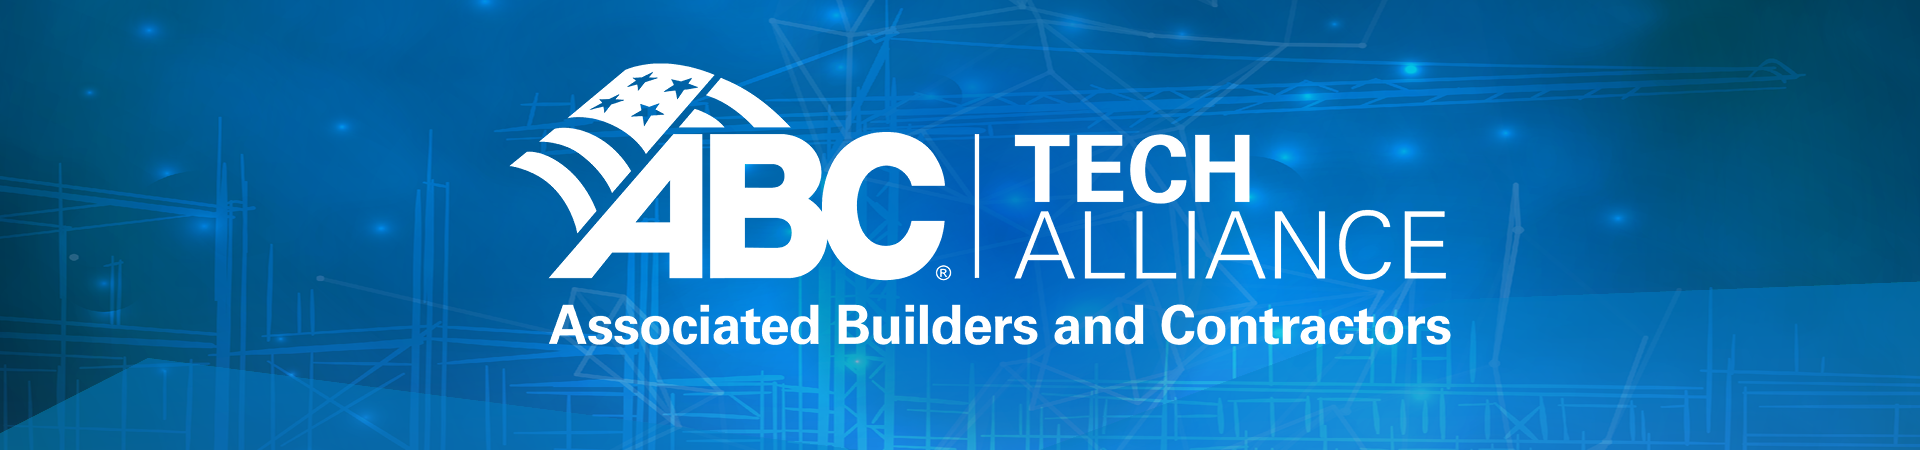 As part of the ABC Tech Alliance, we are proud to engage in educational content for ABC membership. If you are considering bringing on a construction technology solution, you should check out our latest piece on why you should choose a construction technology platform with a Delivery Strategy - and how it will help you create long term value for your team: